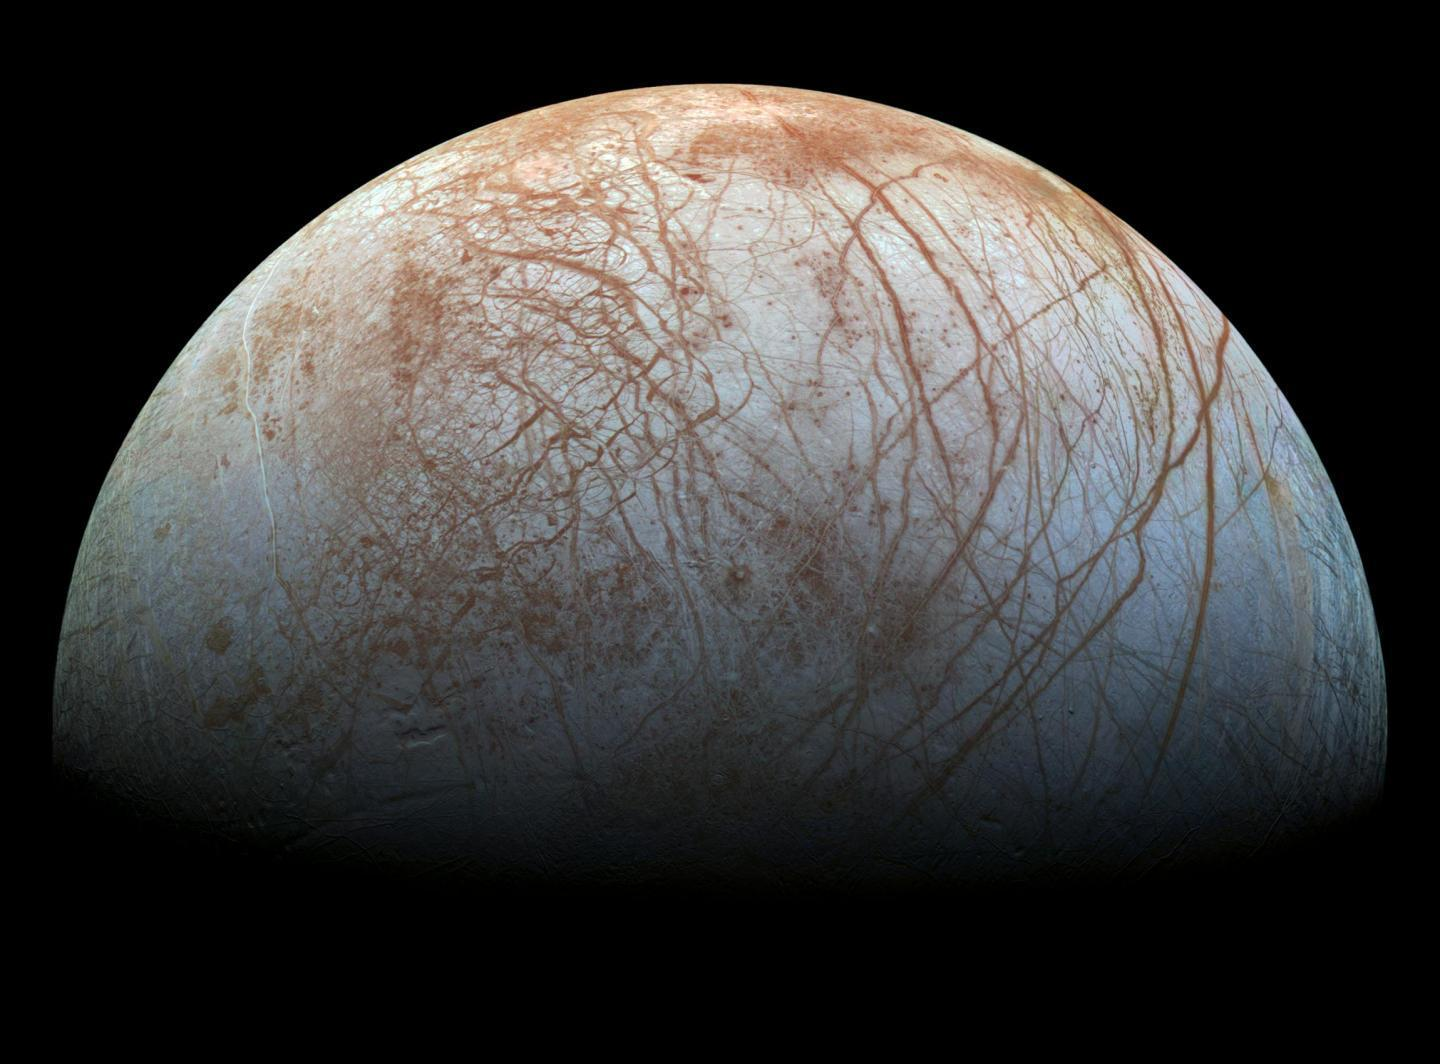 We might find alien life on Jupiter's ocean moon, Nasa says